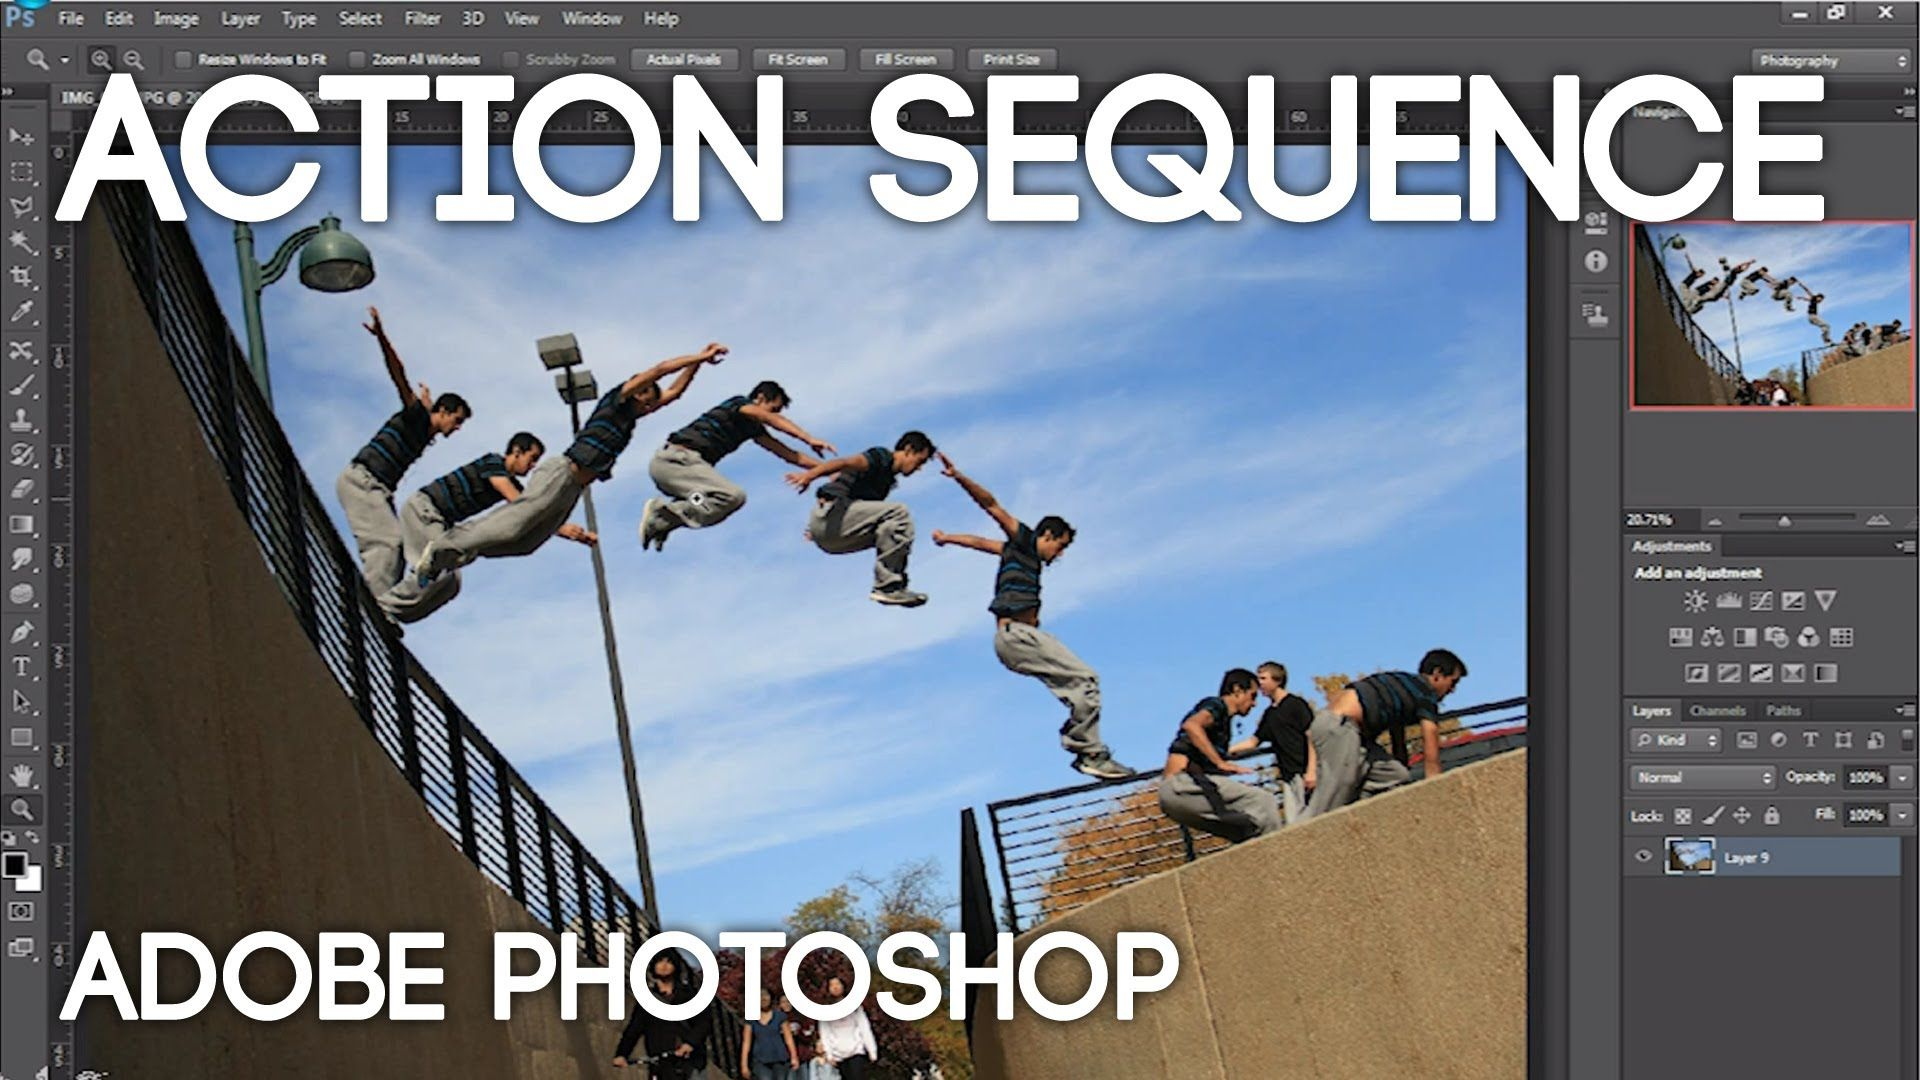 Tutorial action sequence photography with adobe photoshop cs6 tutorial action sequence photography with adobe photoshop cs6 baditri Choice Image